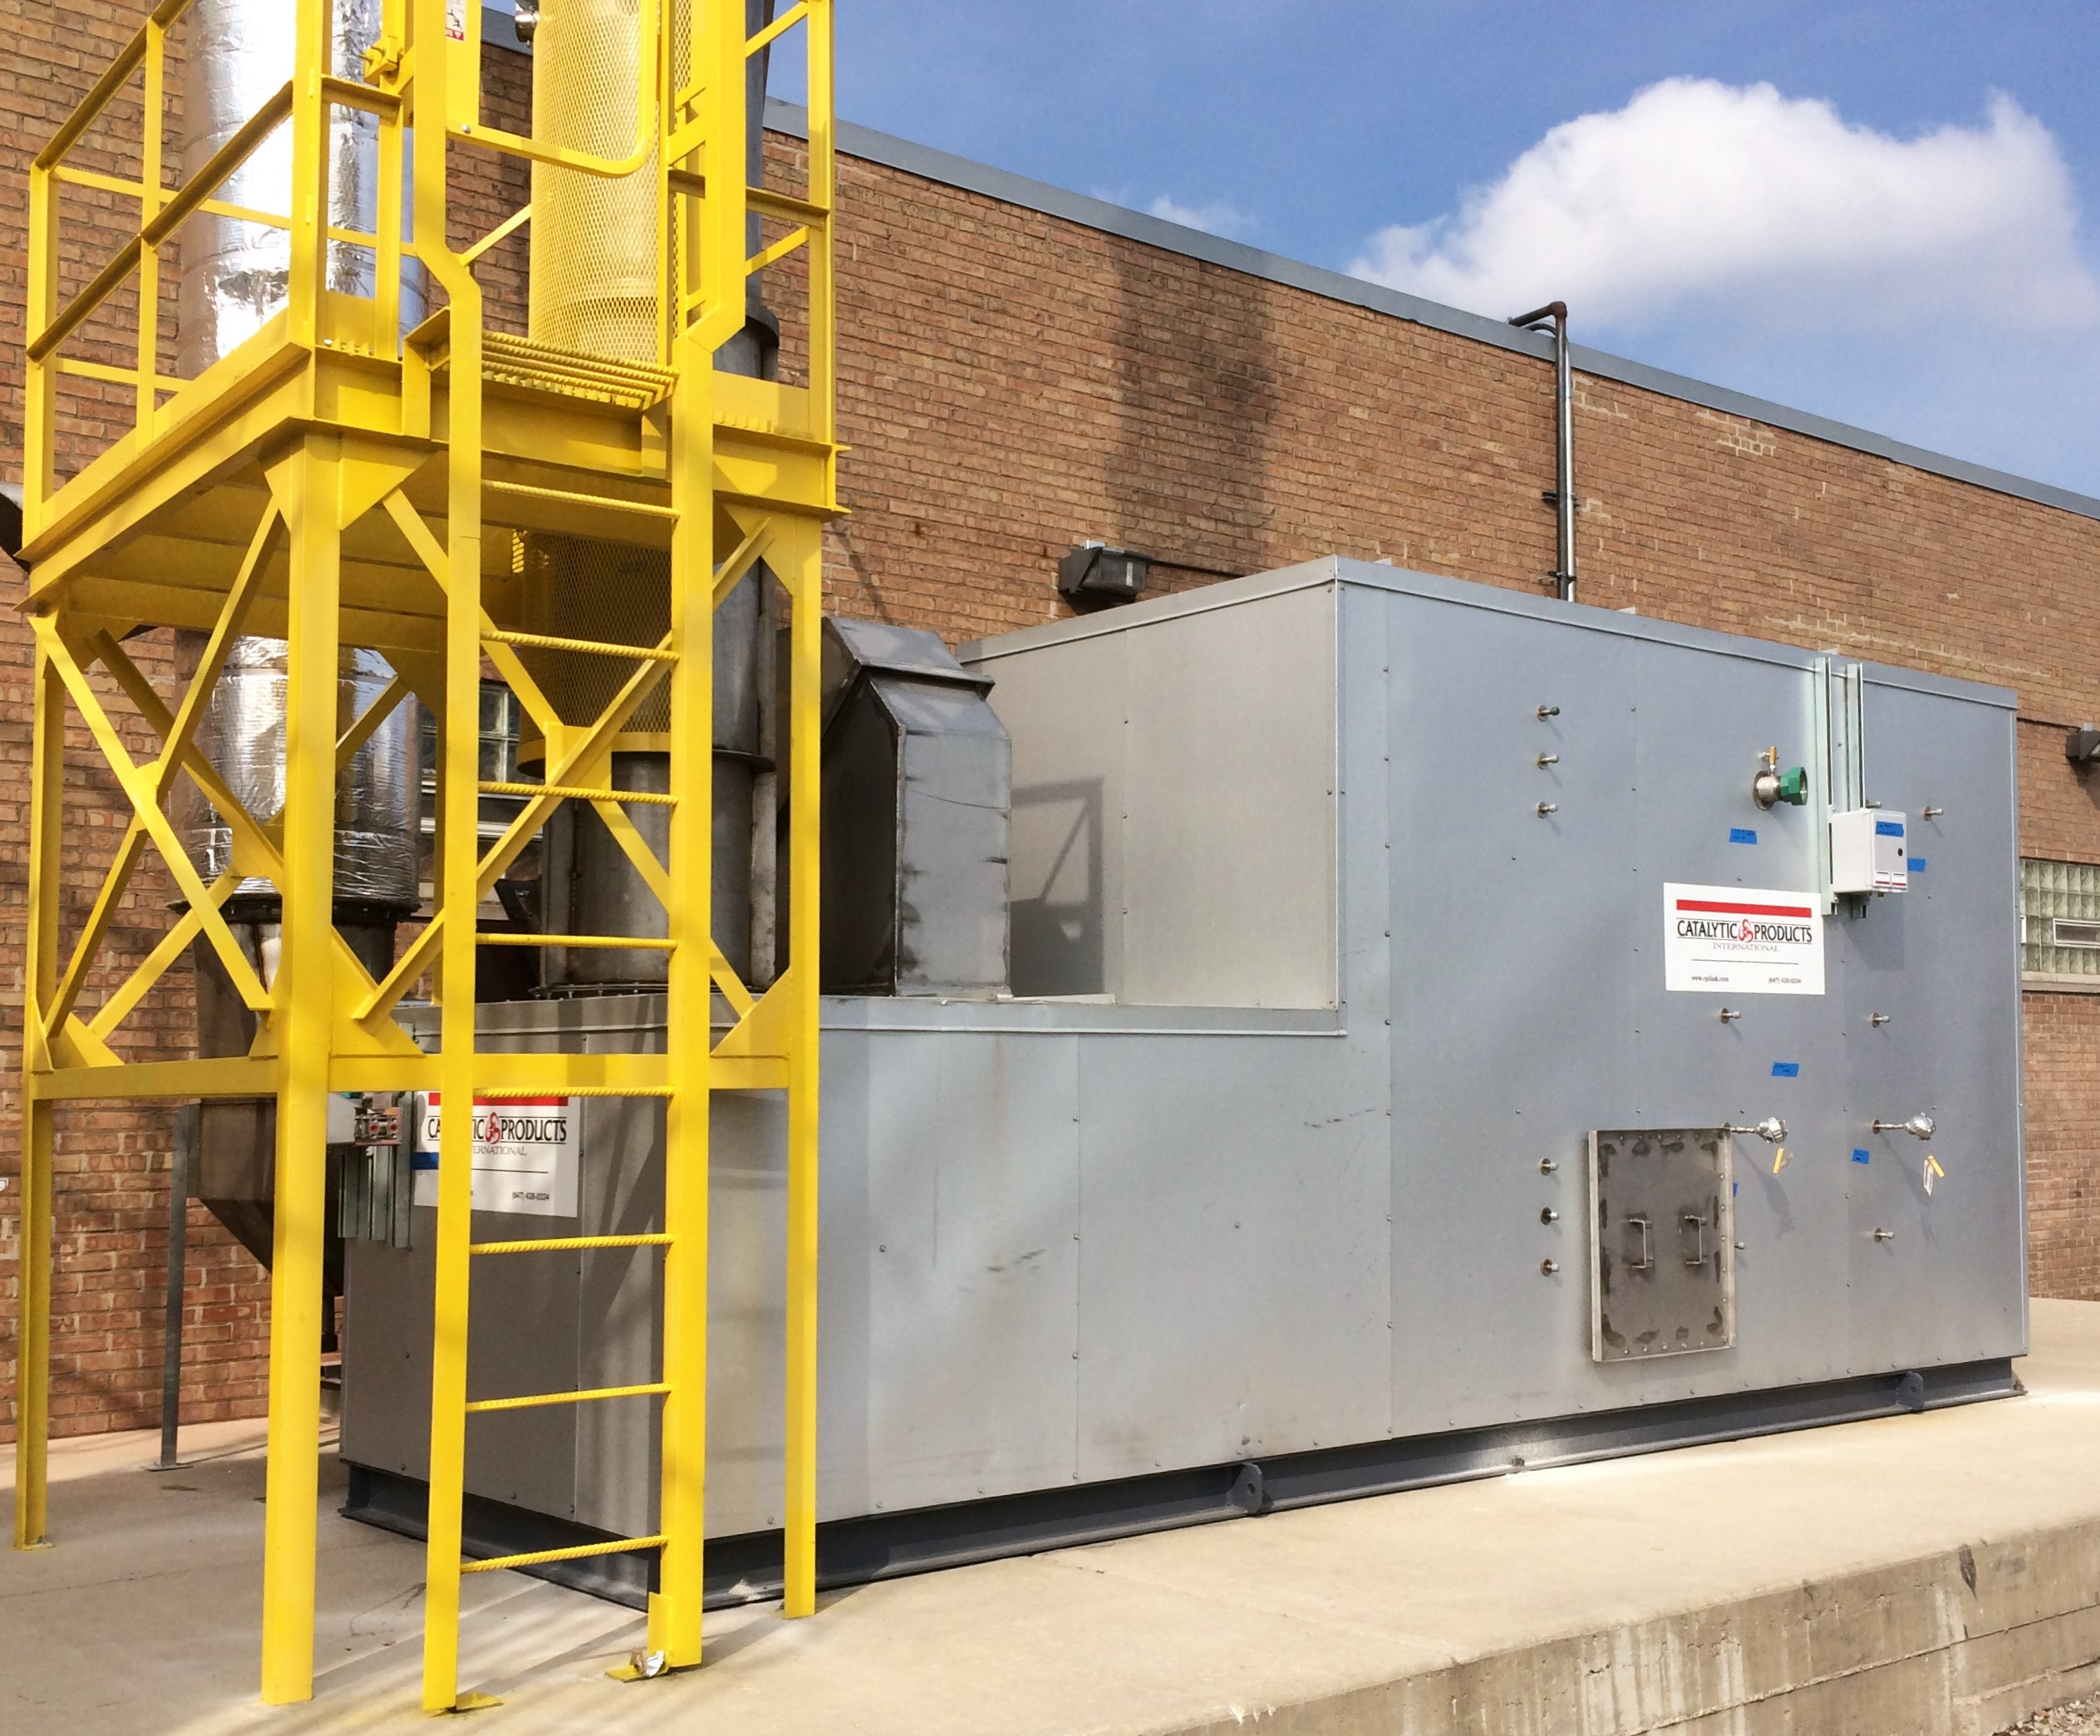 CPI CatOx unit installed at a commercial food processing facility.